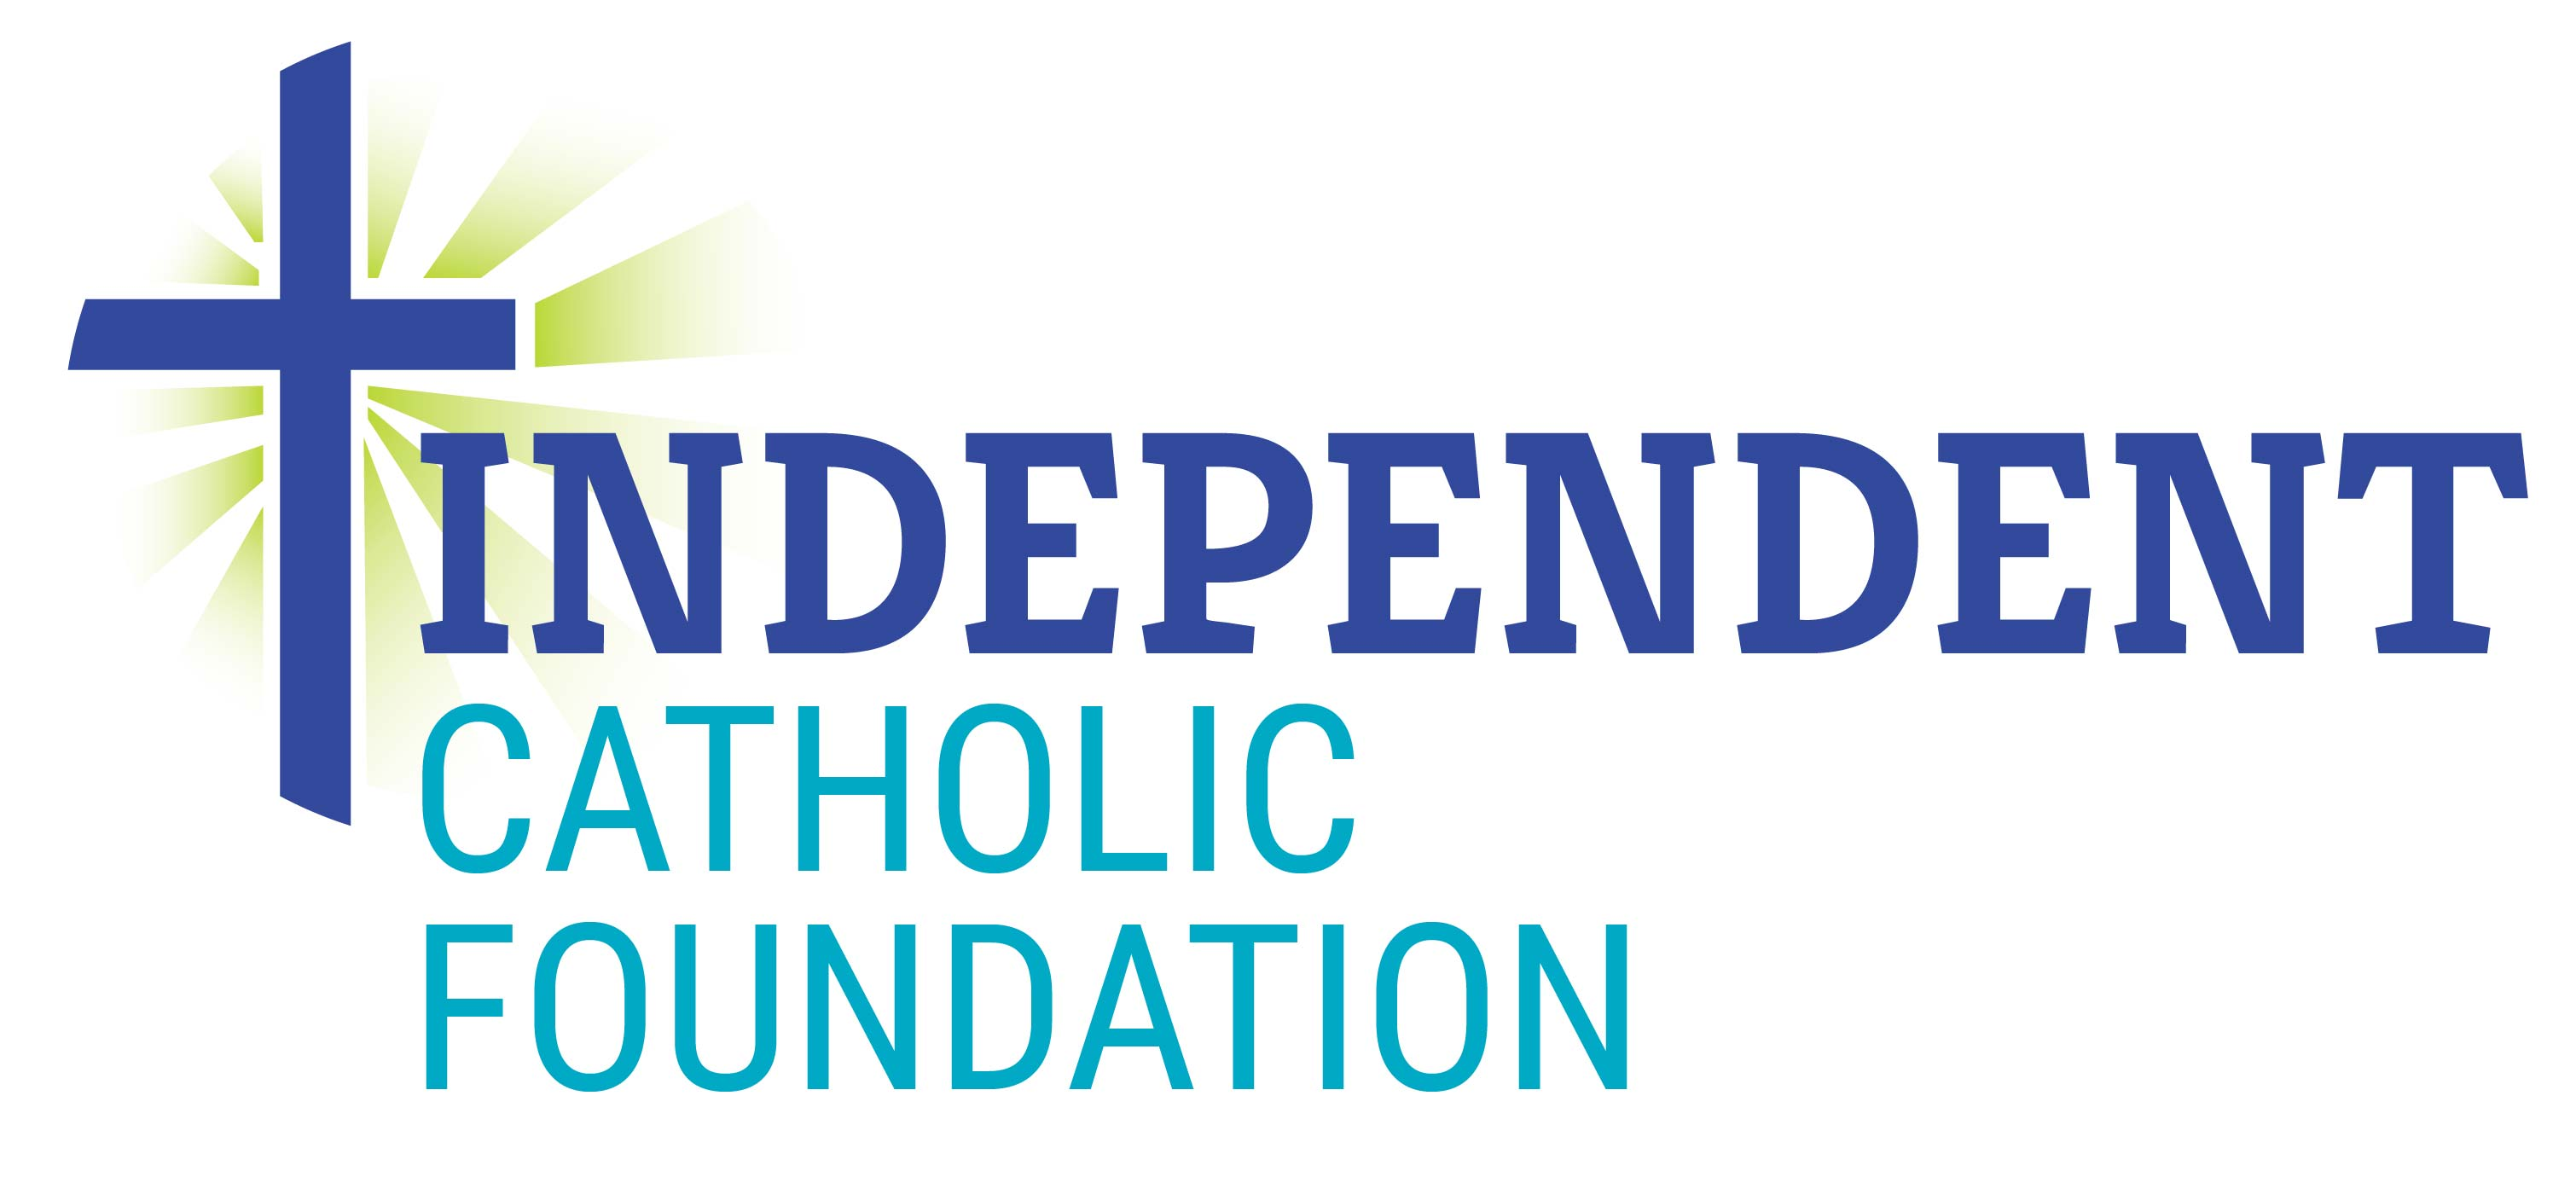 Independent Catholic Foundation